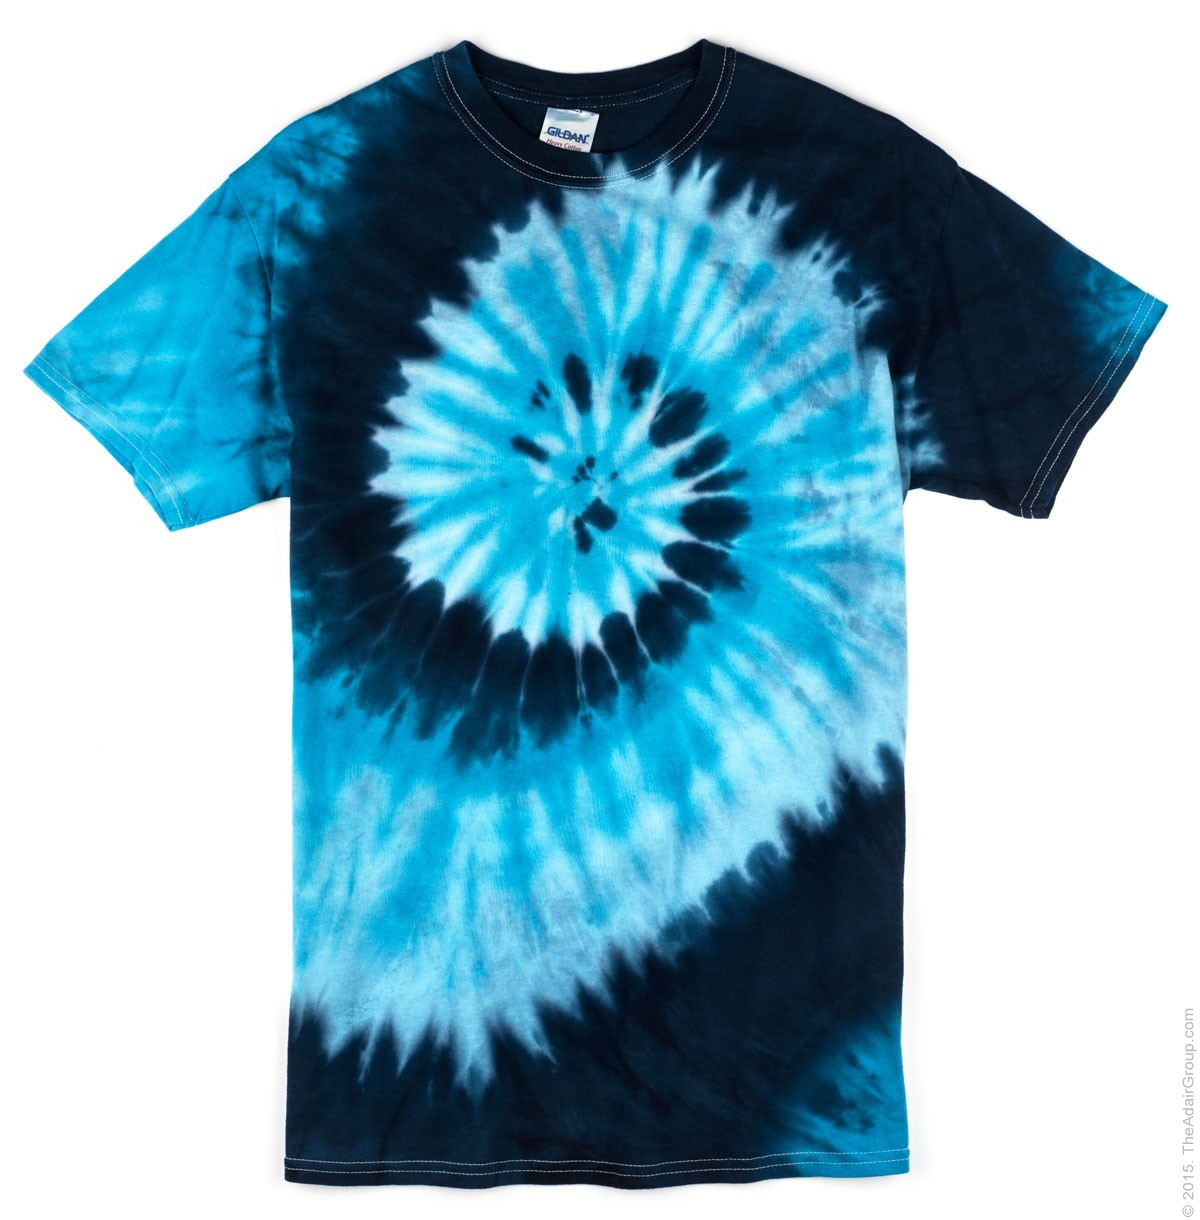 Fabulous Tie-Dye T-Shirts for Adults at Discount Prices - The Adair Group CN54